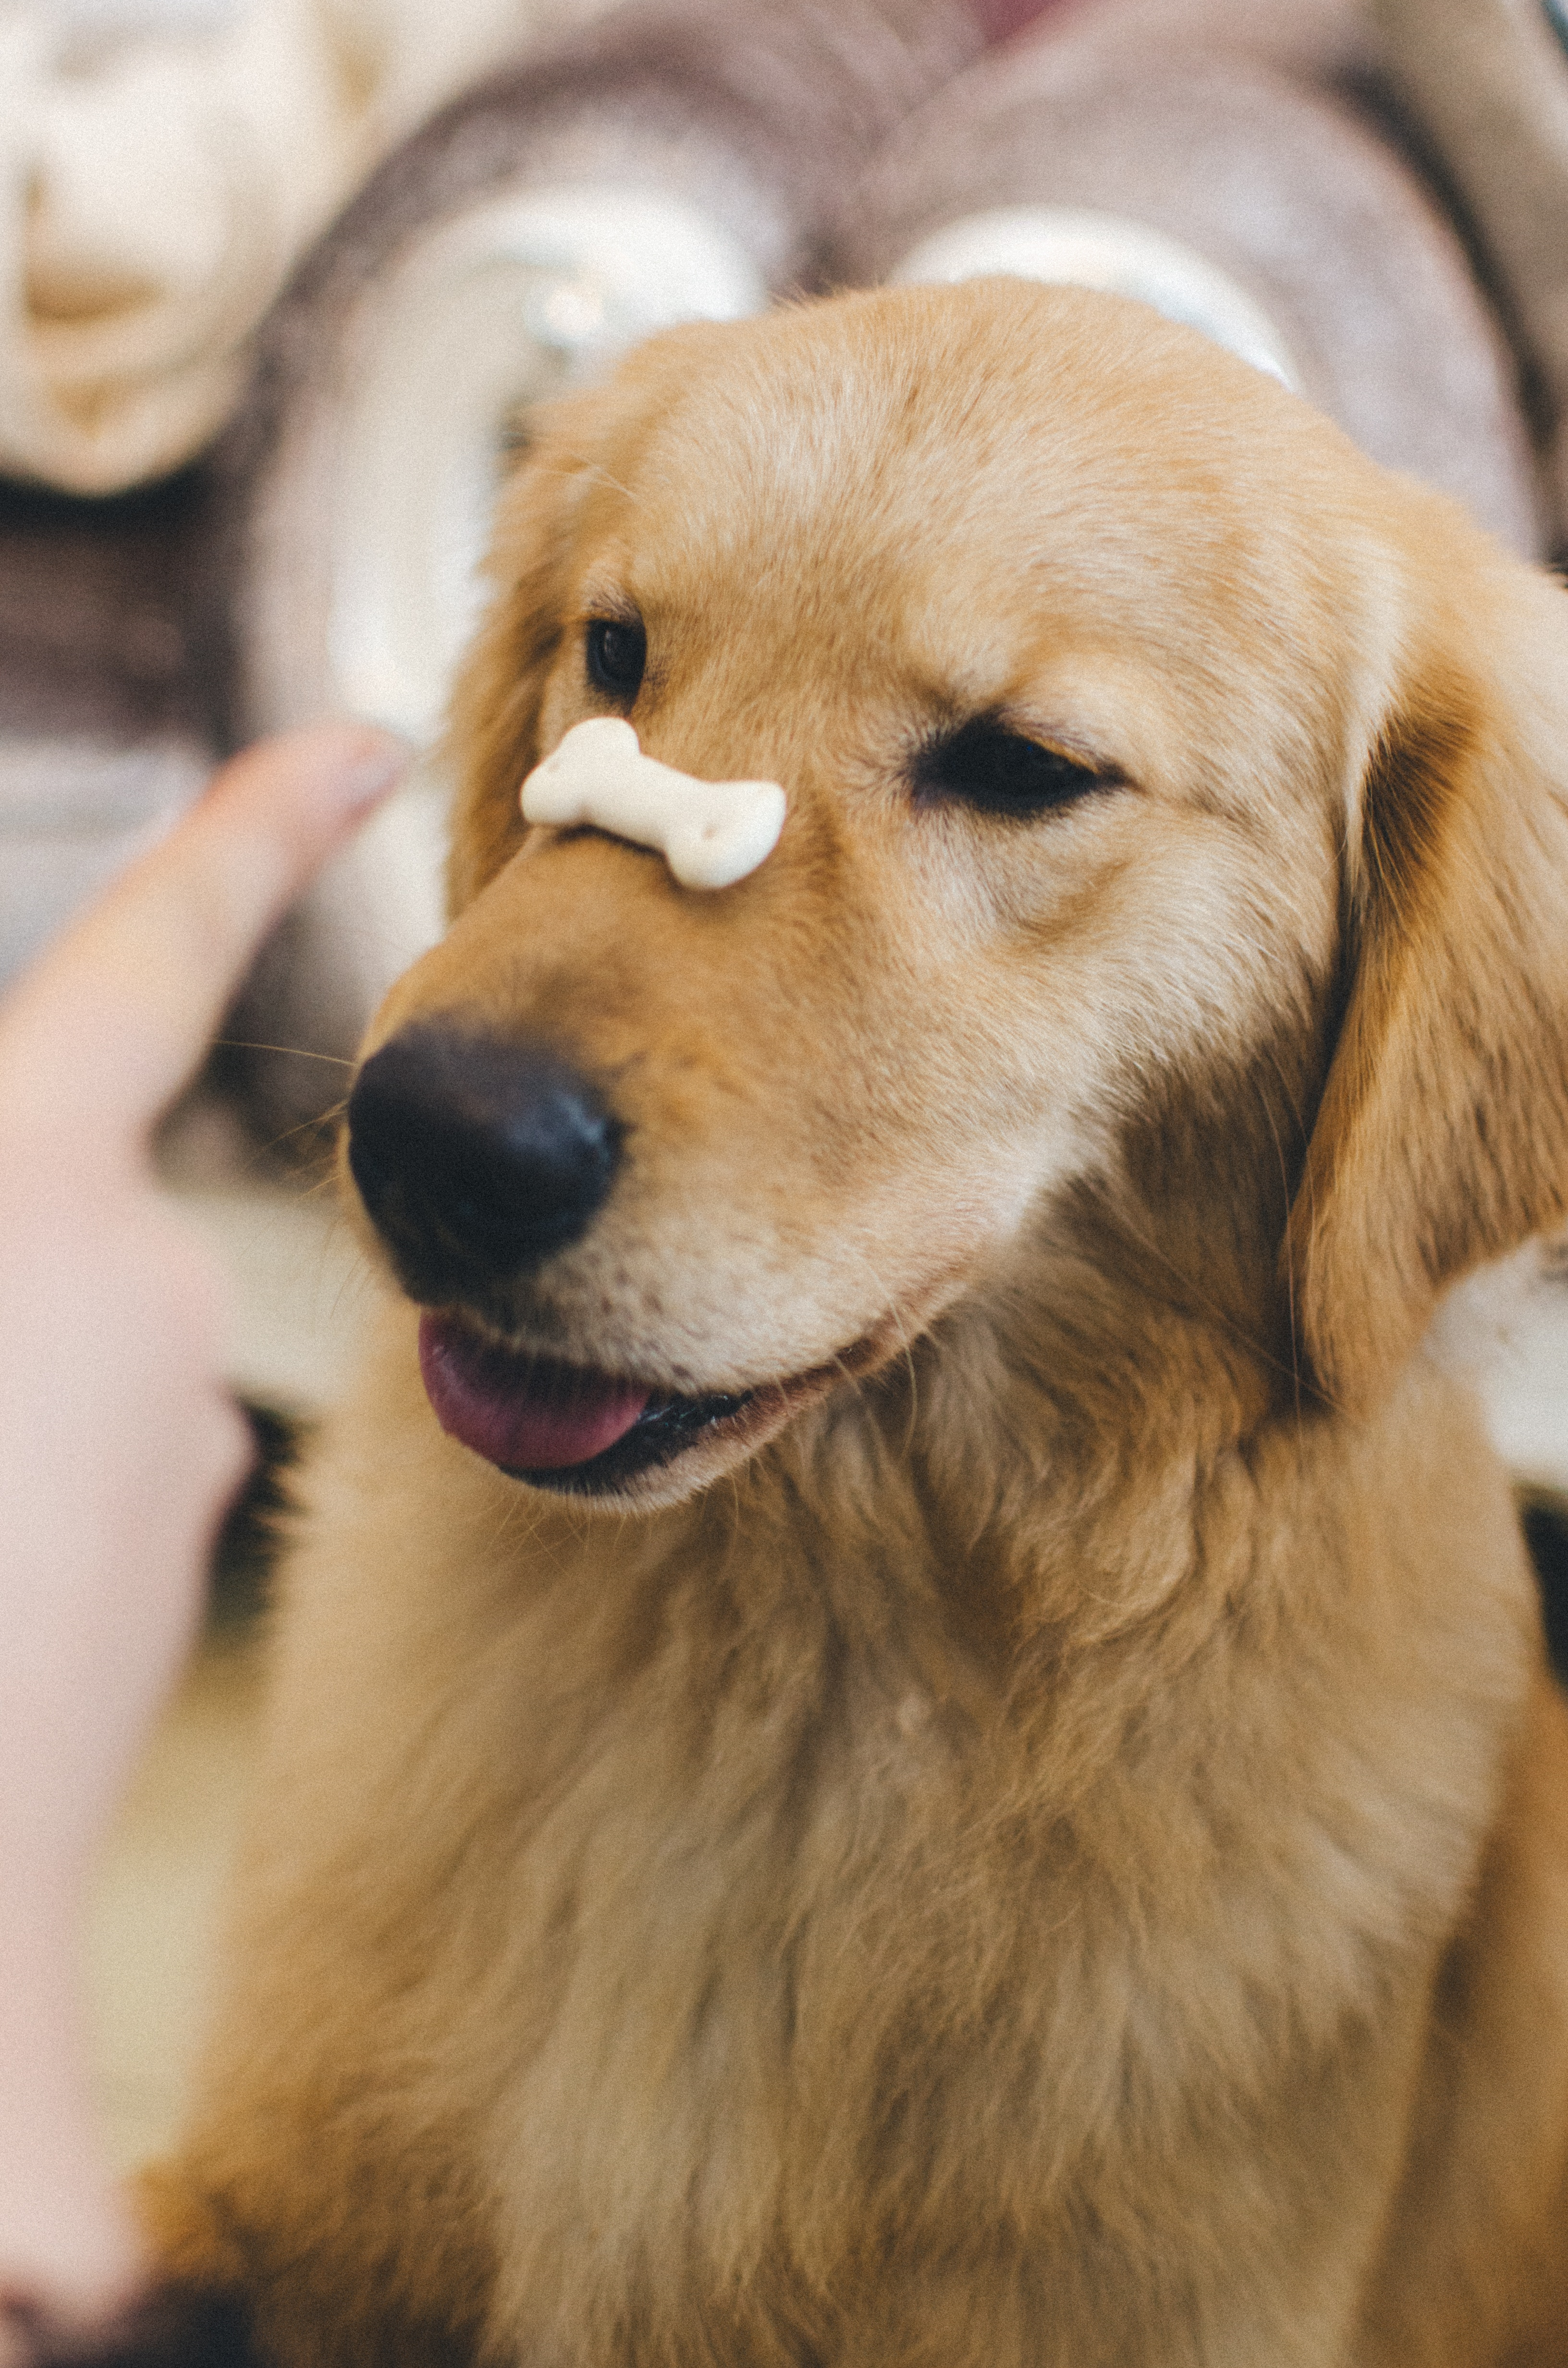 Dog holds treat on its nose